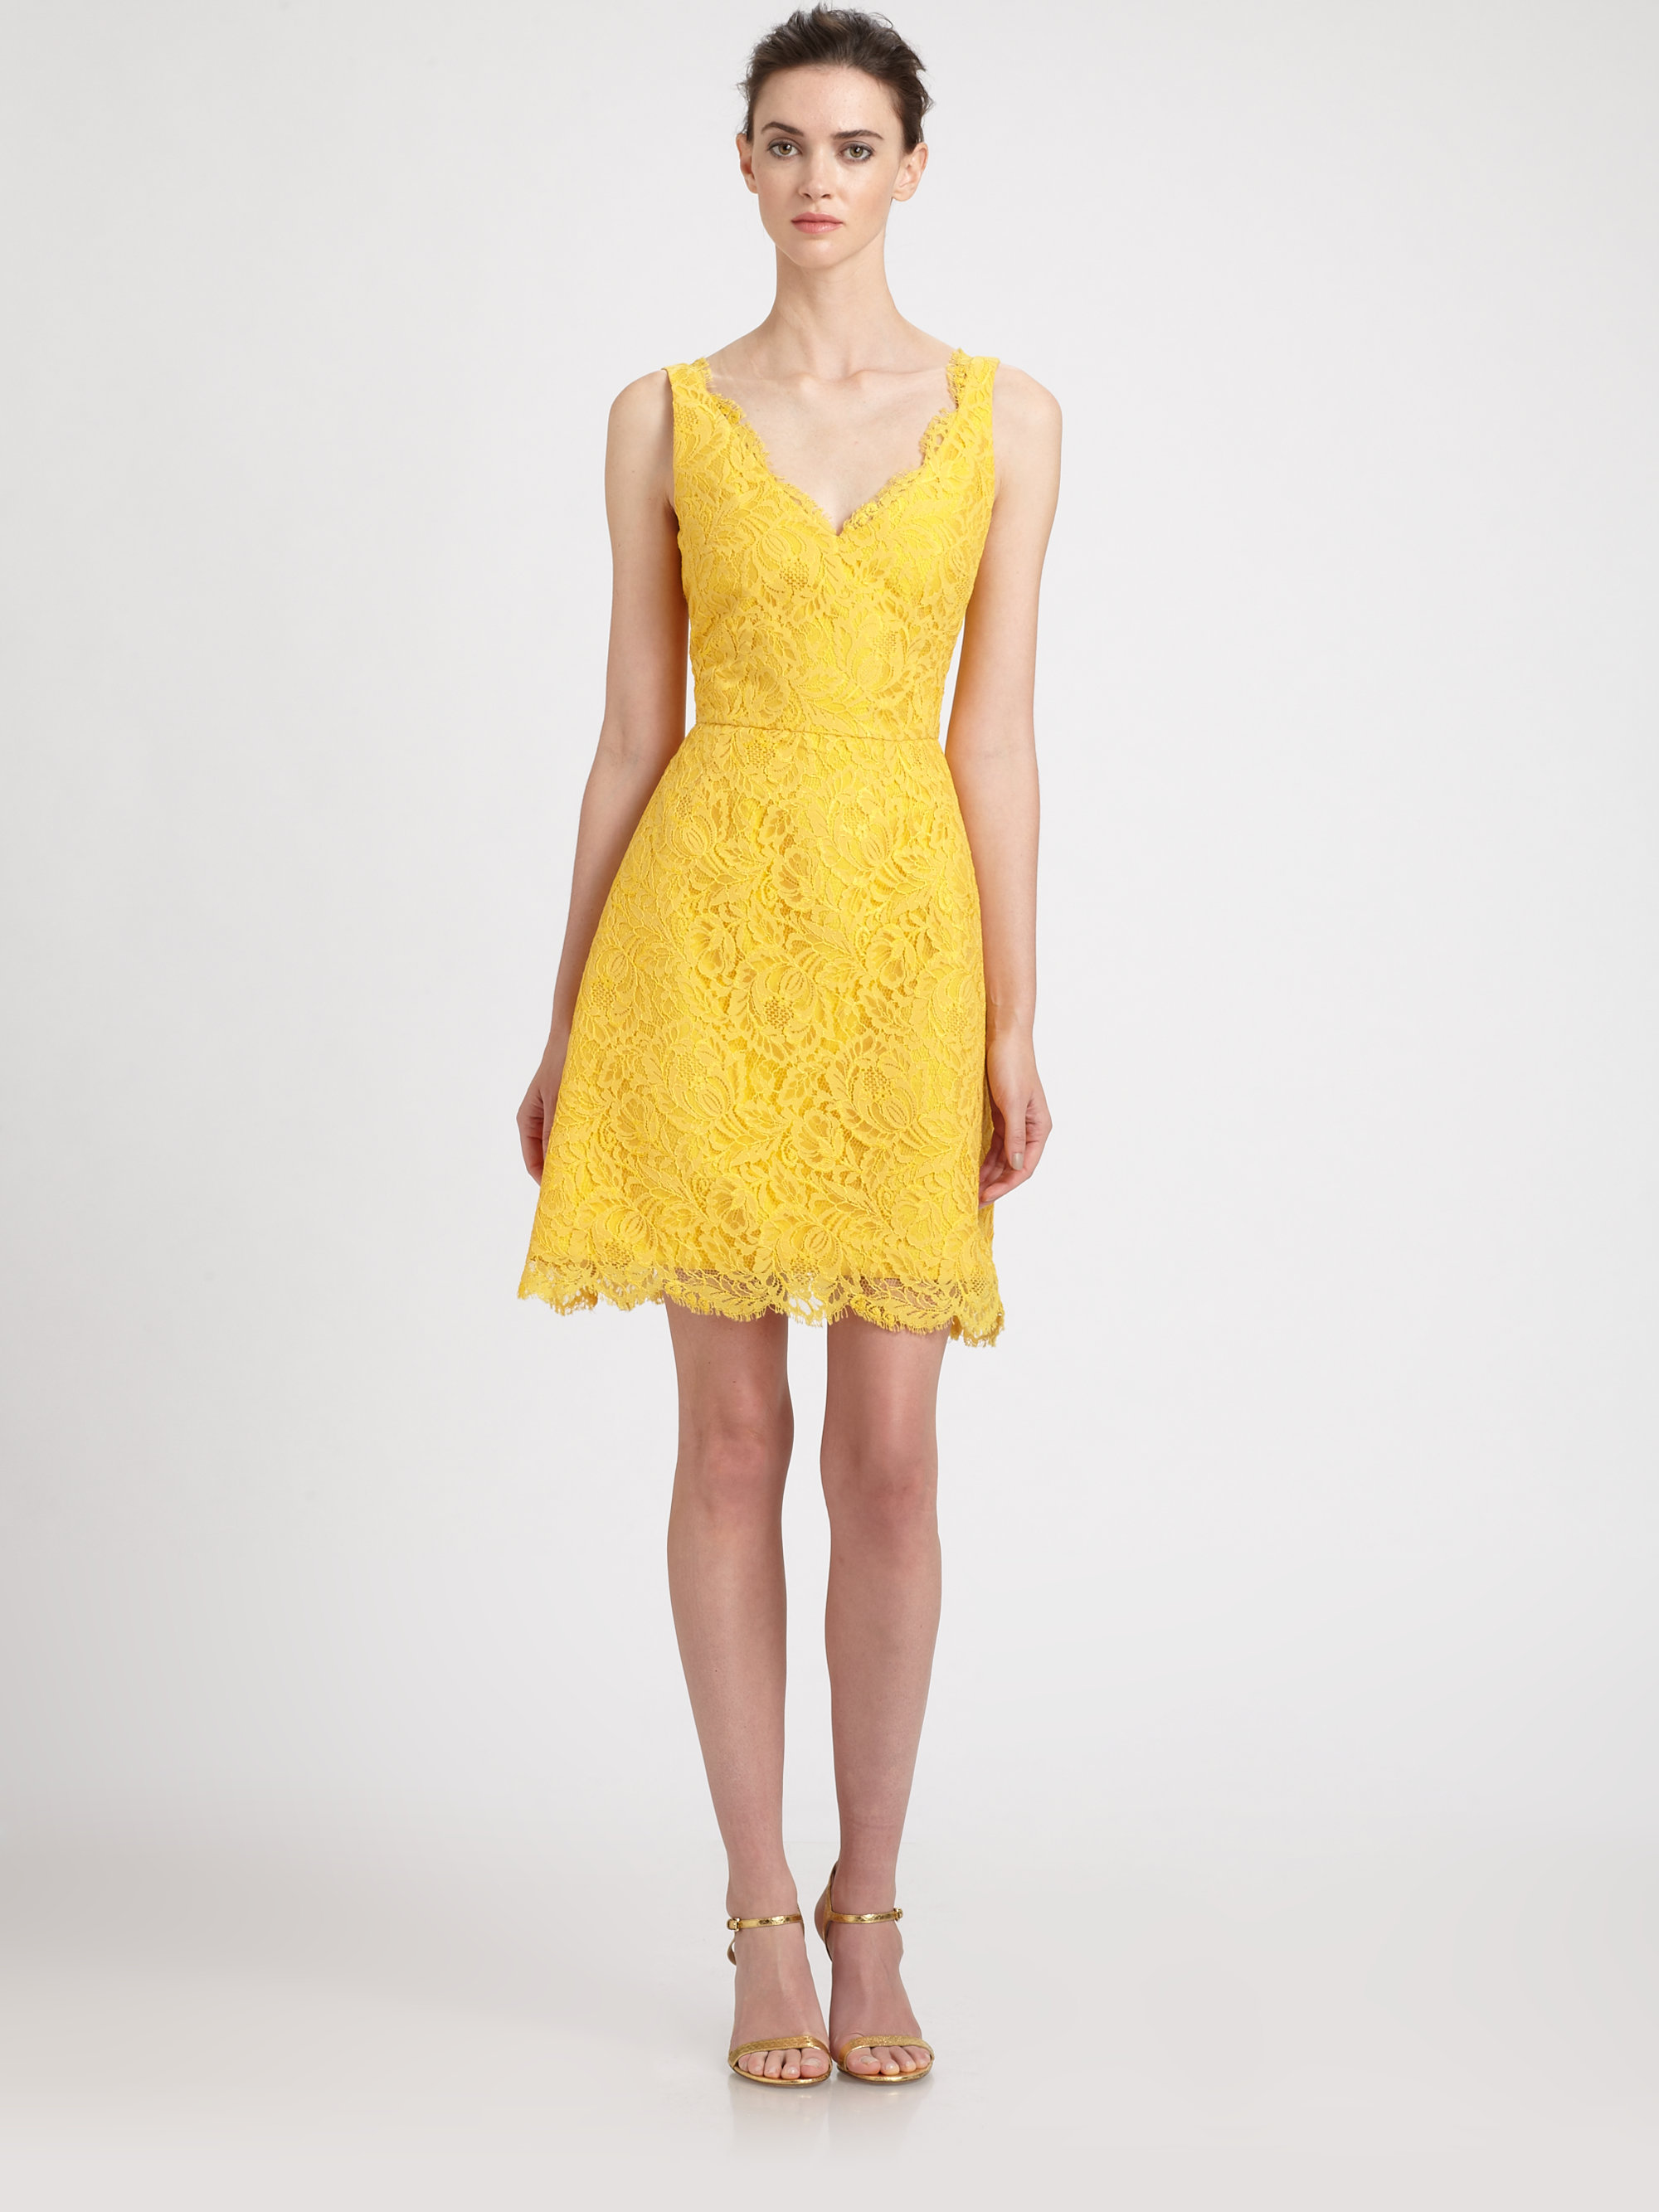 d0ee58596b9 ML Monique Lhuillier Lace Dress in Yellow - Lyst